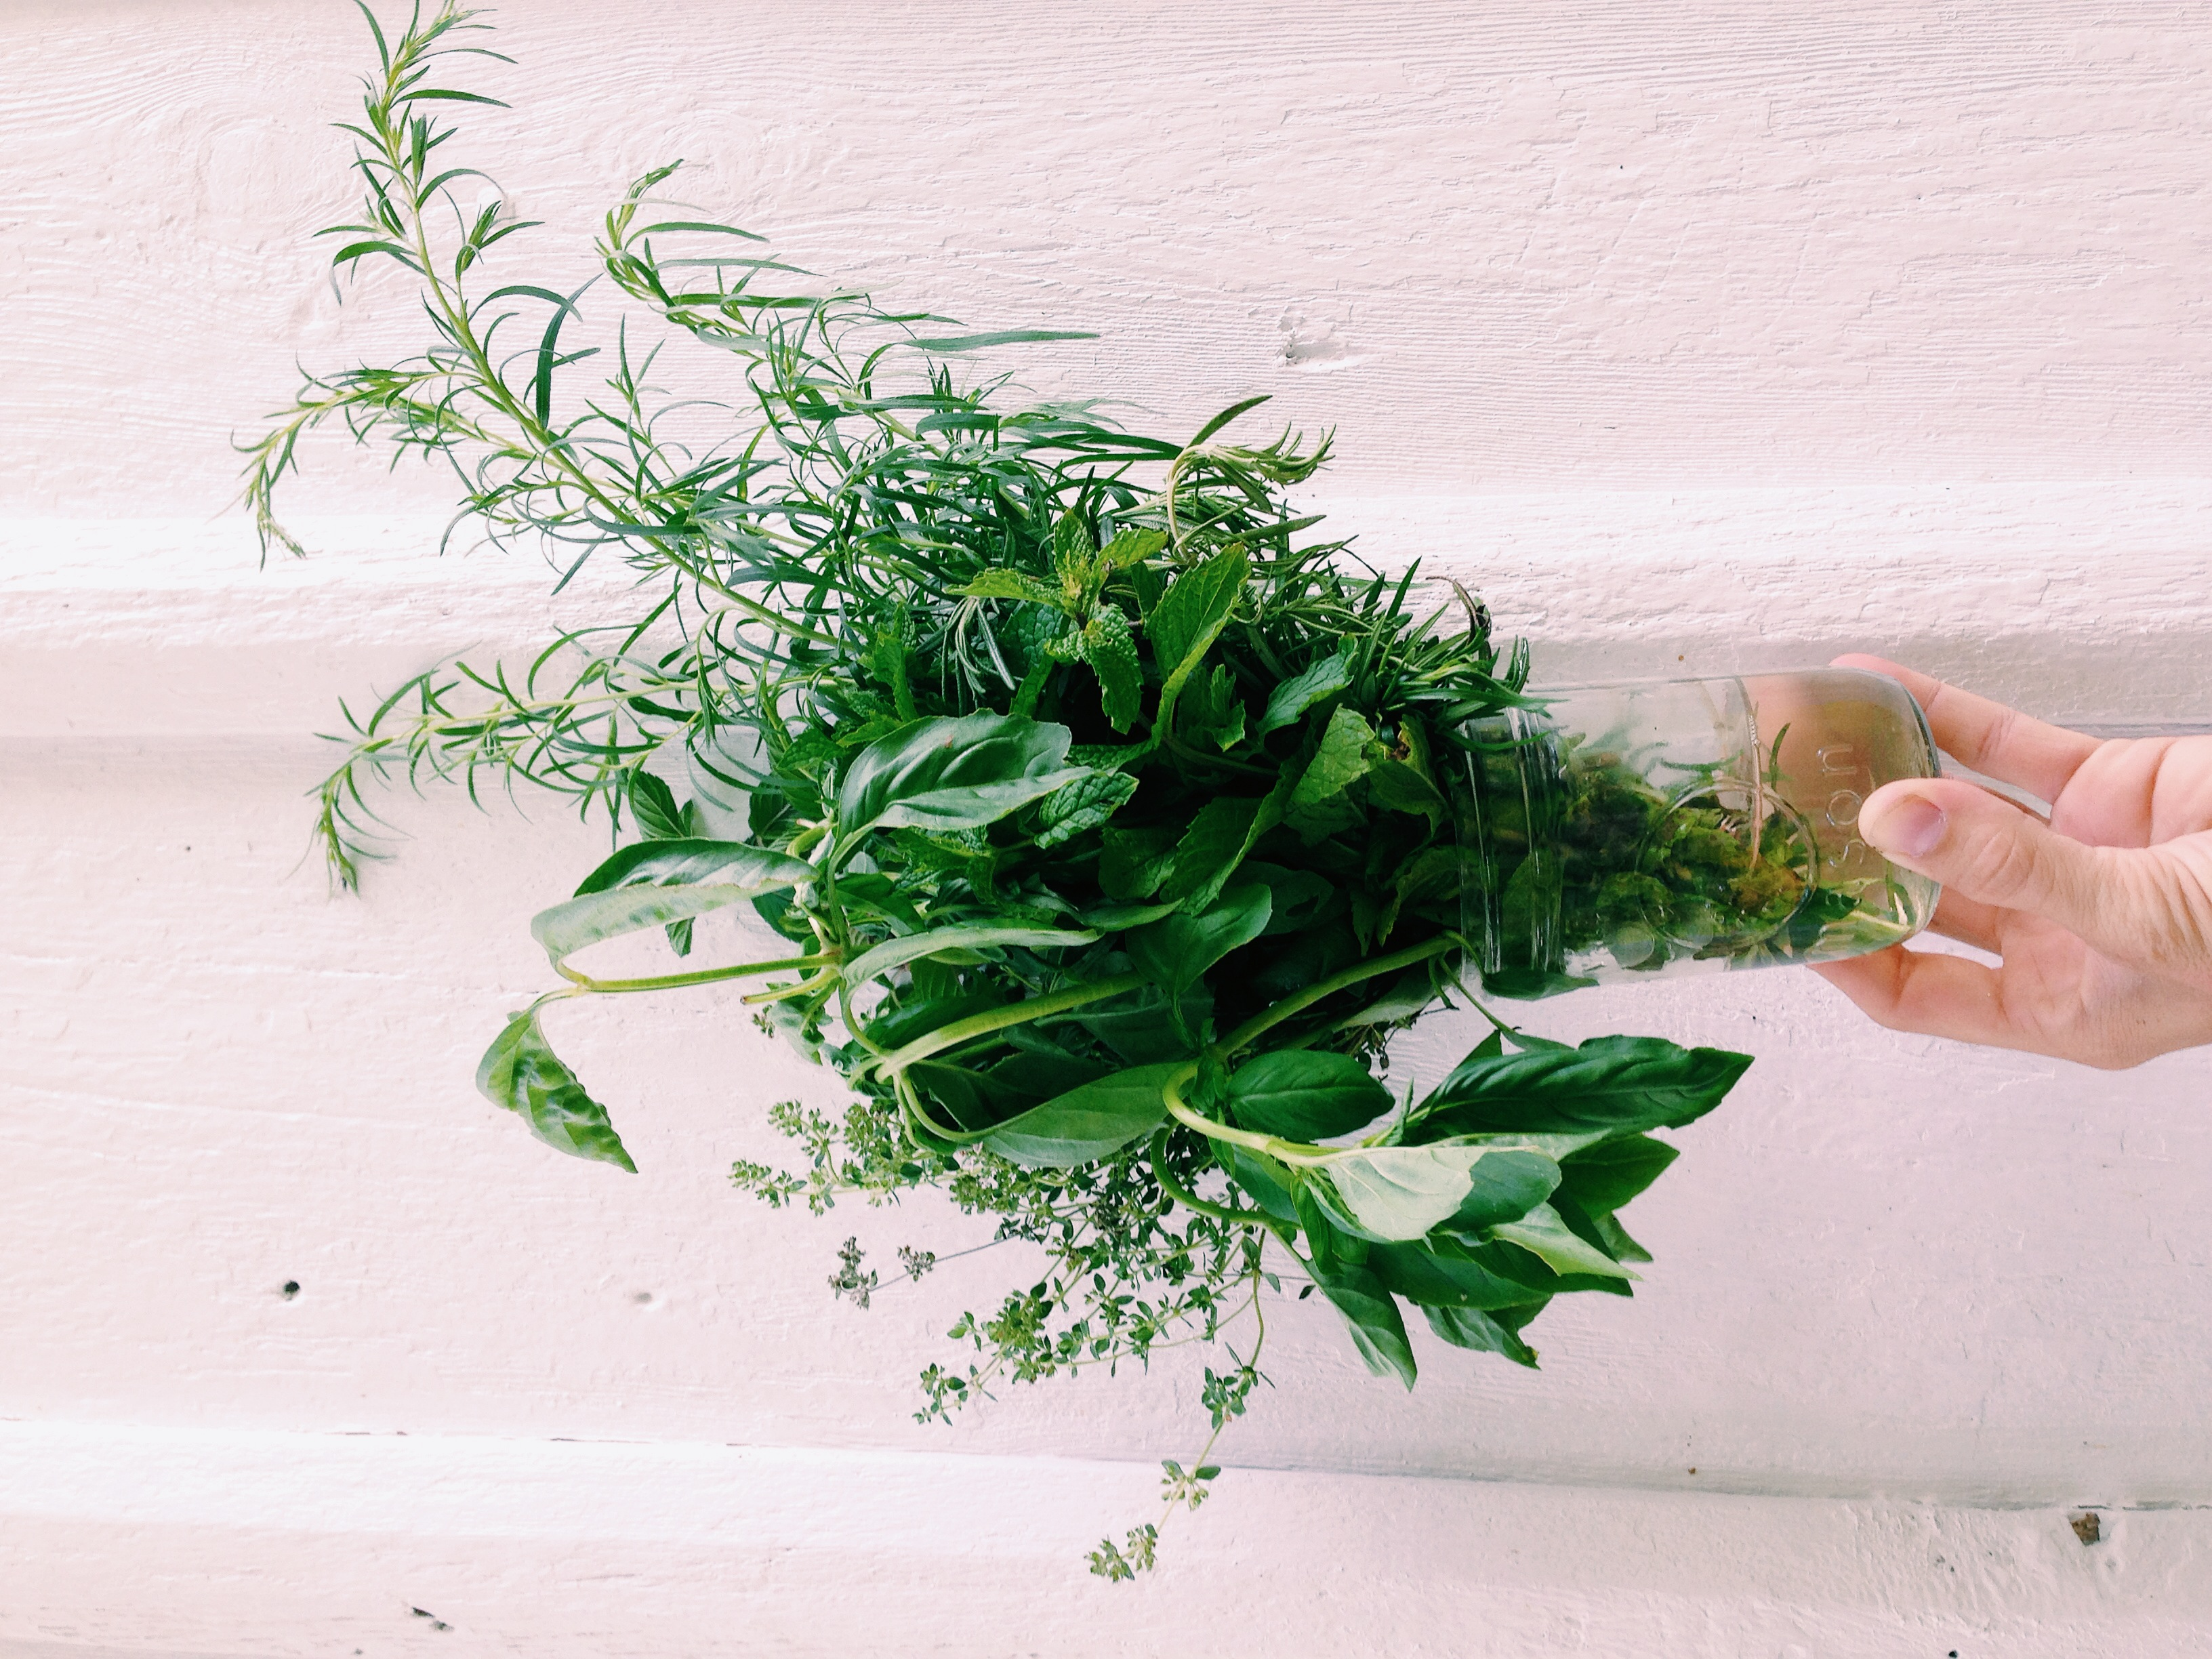 Herbs: Dill, Basel, Thyme, Rosemary, Mint, etc...